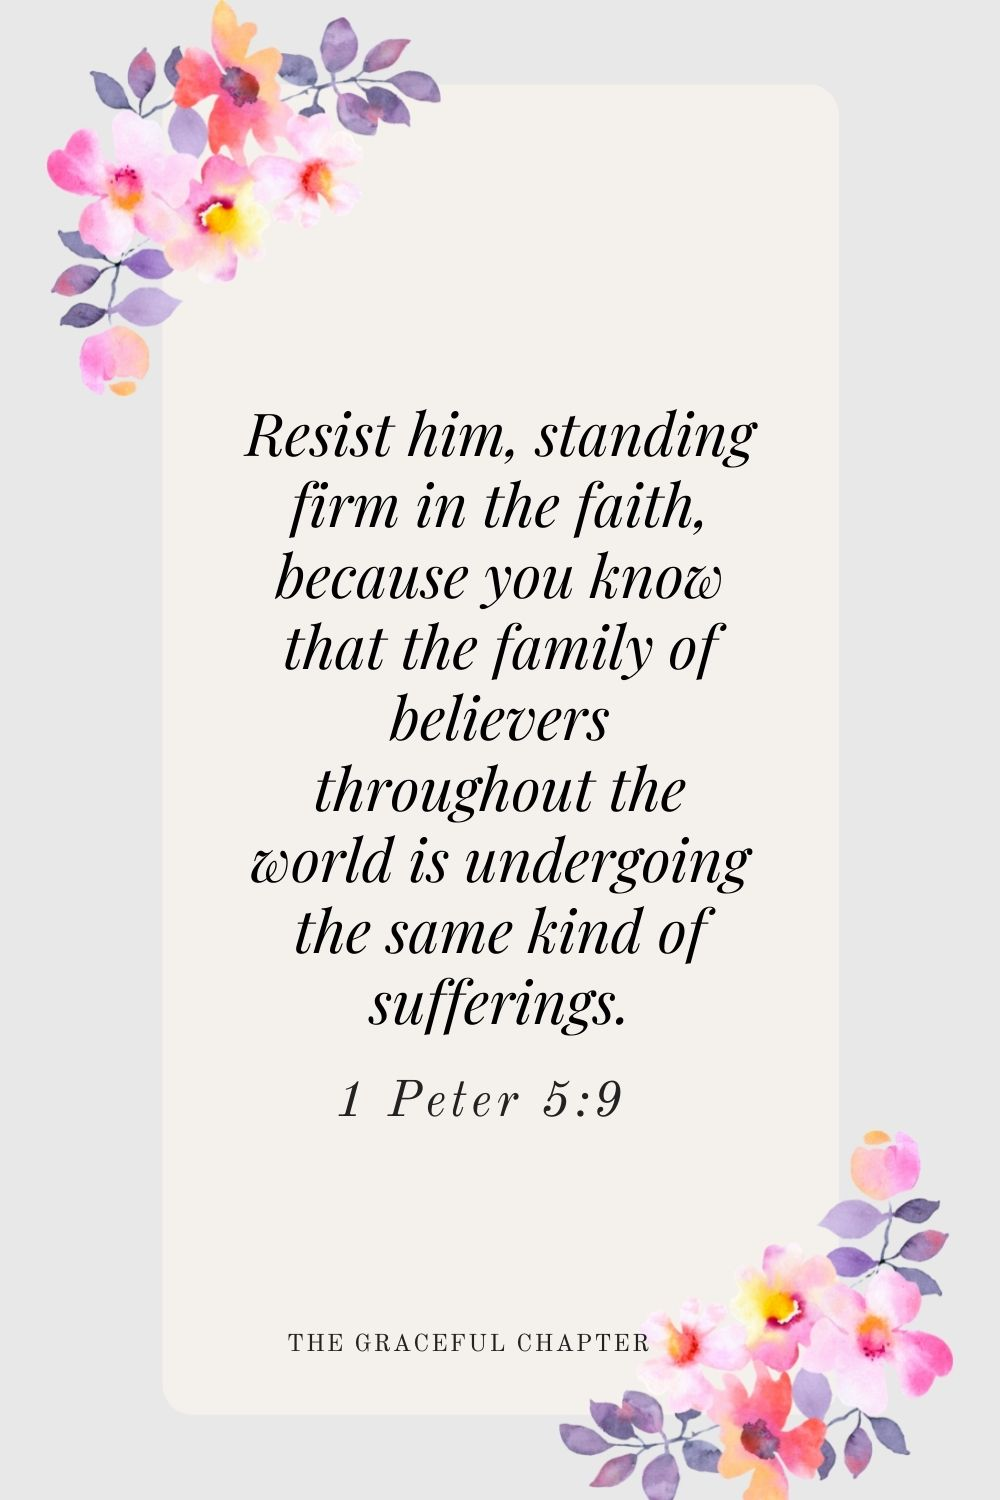 Resist him, standing firm in the faith, because you know that the family of believers throughout the world is undergoing the same kind of sufferings. 1 Peter 5:9